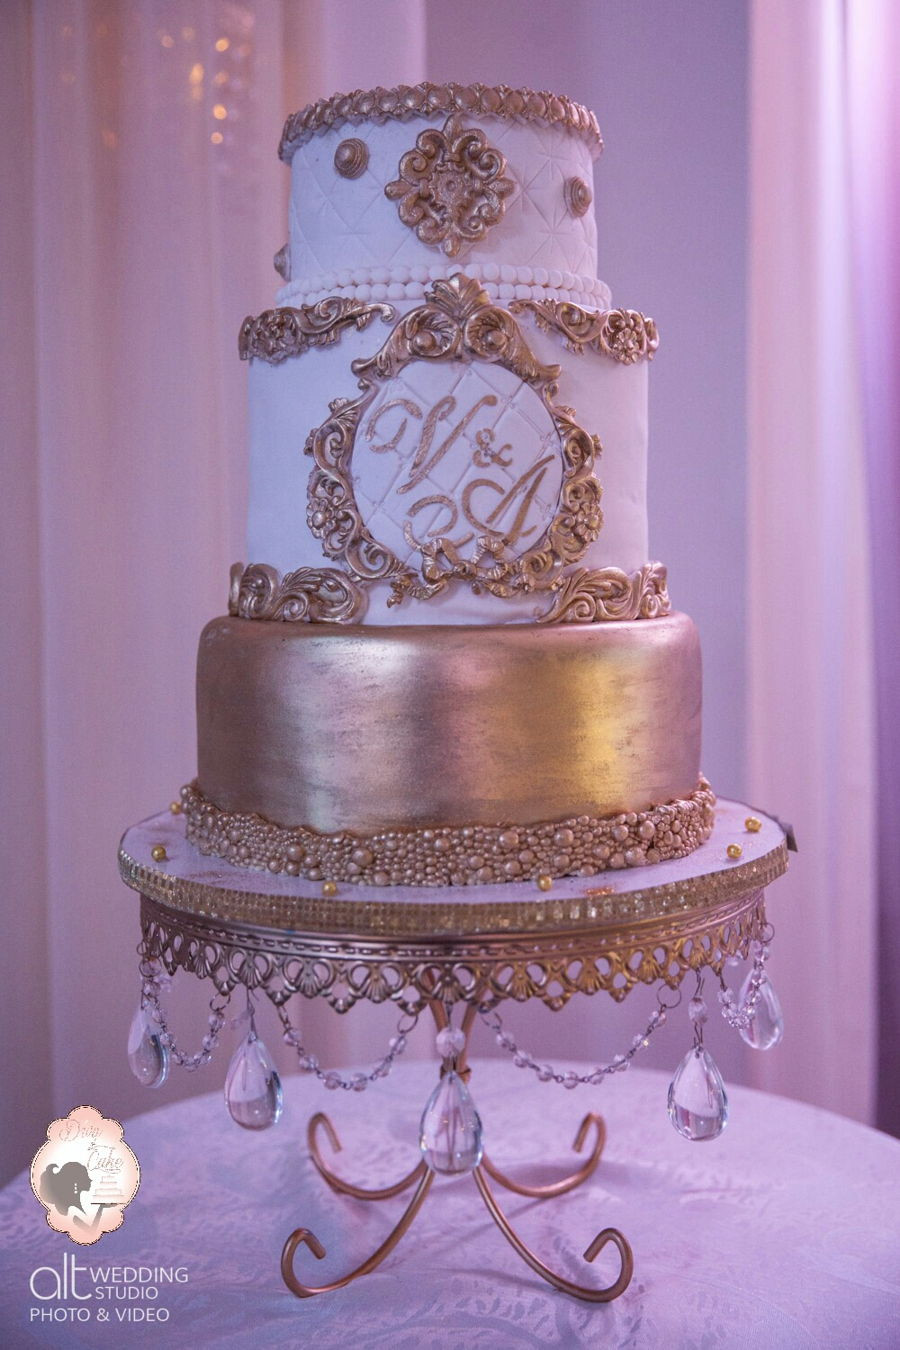 Wedding Cakes White And Gold  Baroque Wedding Cake White & Gold CakeCentral